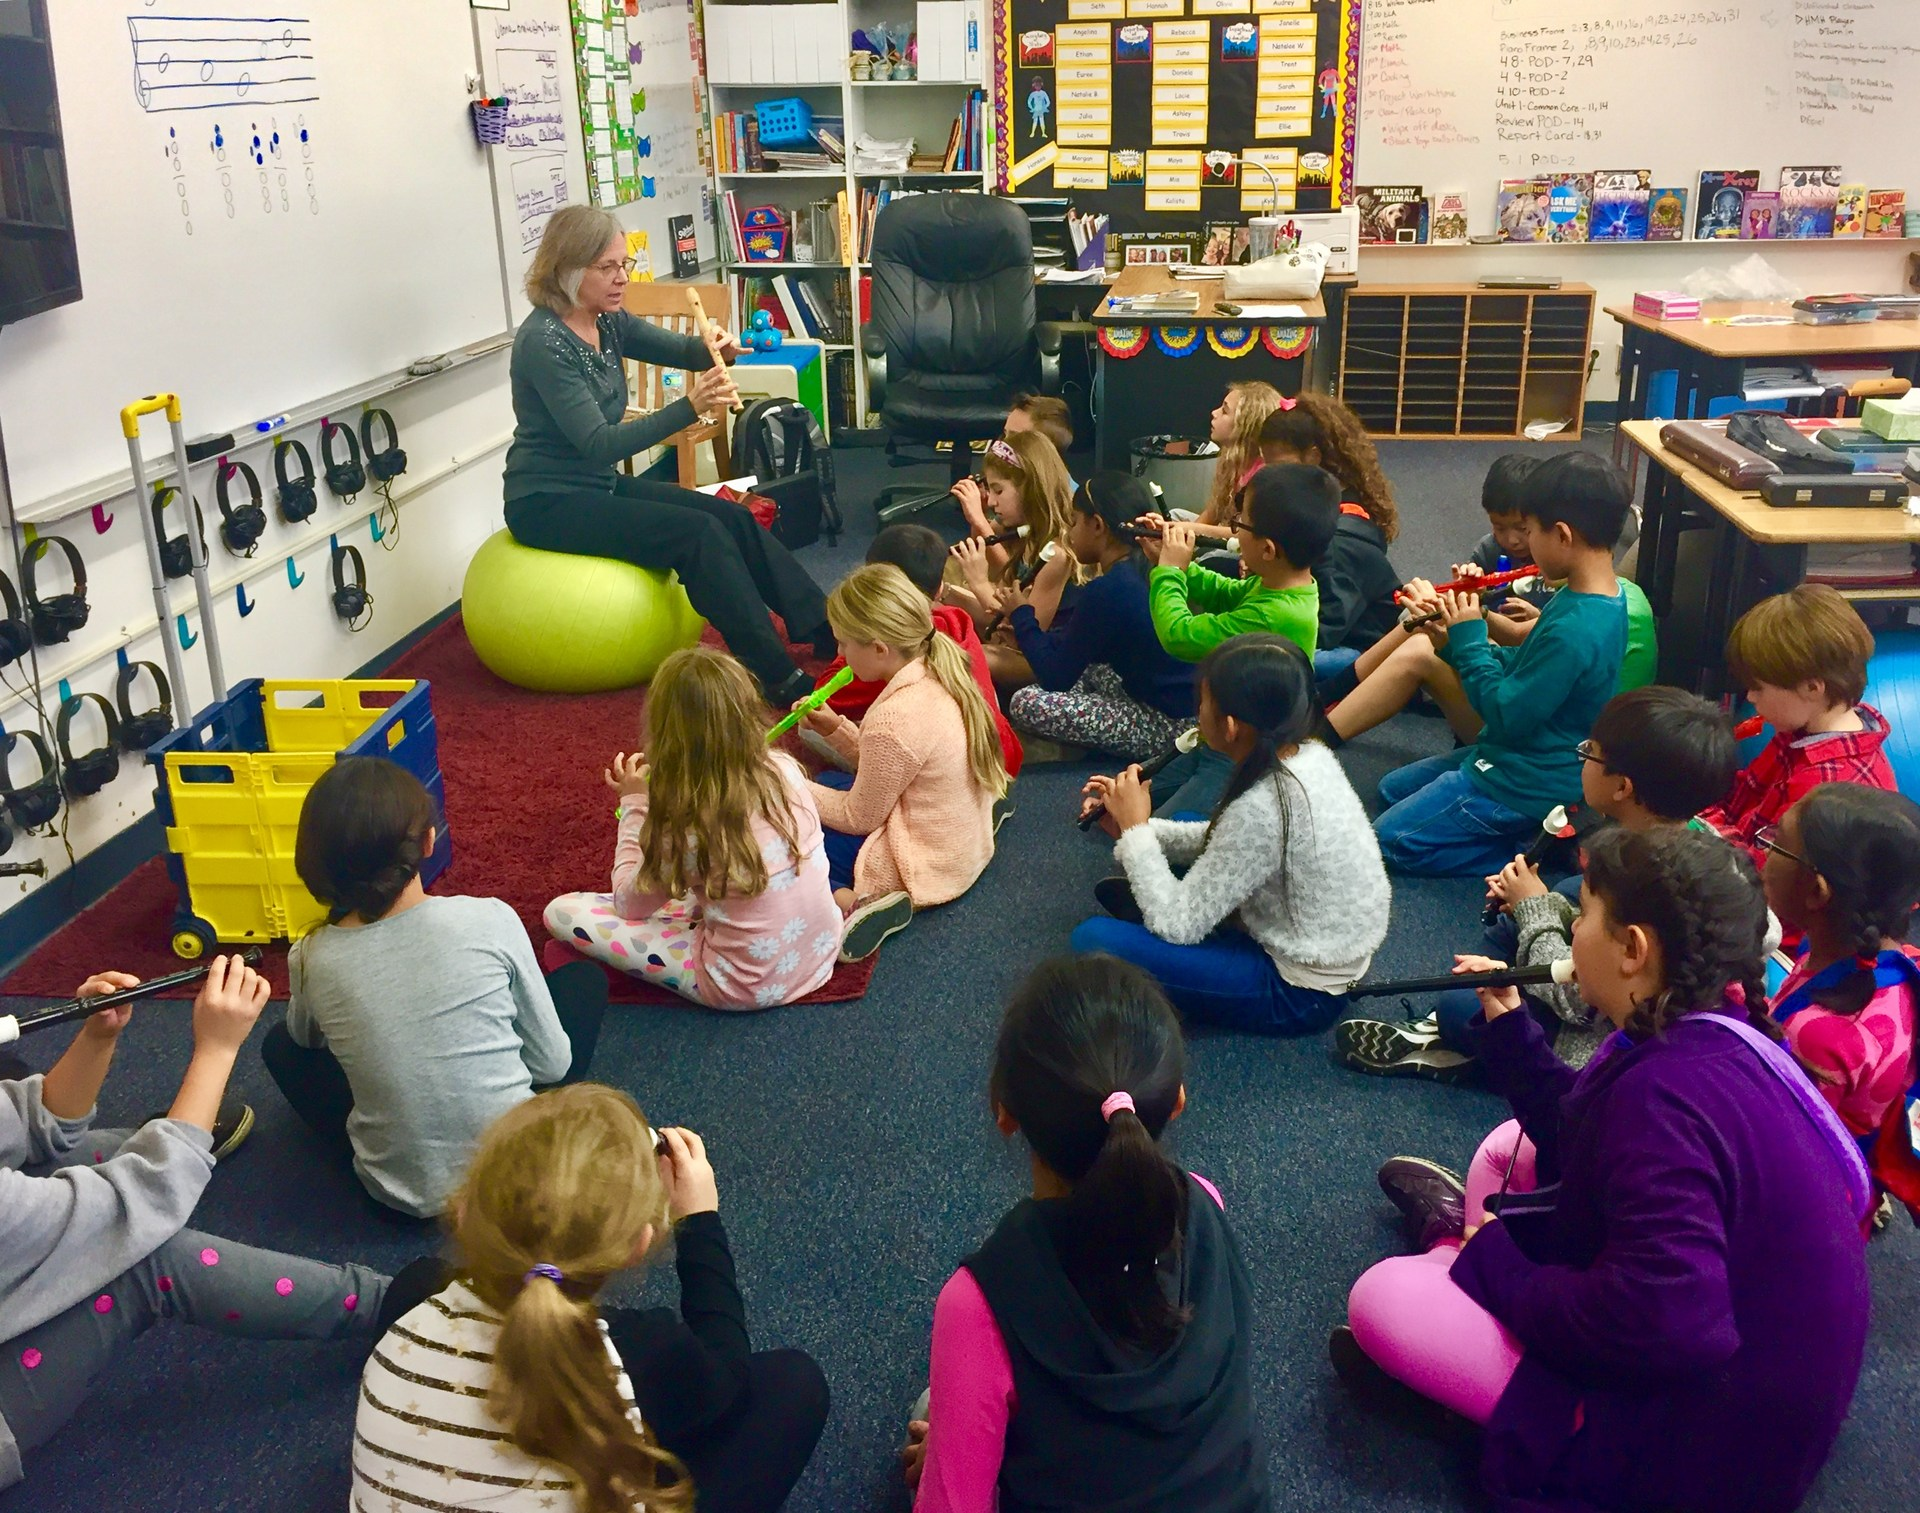 Teacher teaching recorders to a class of students.